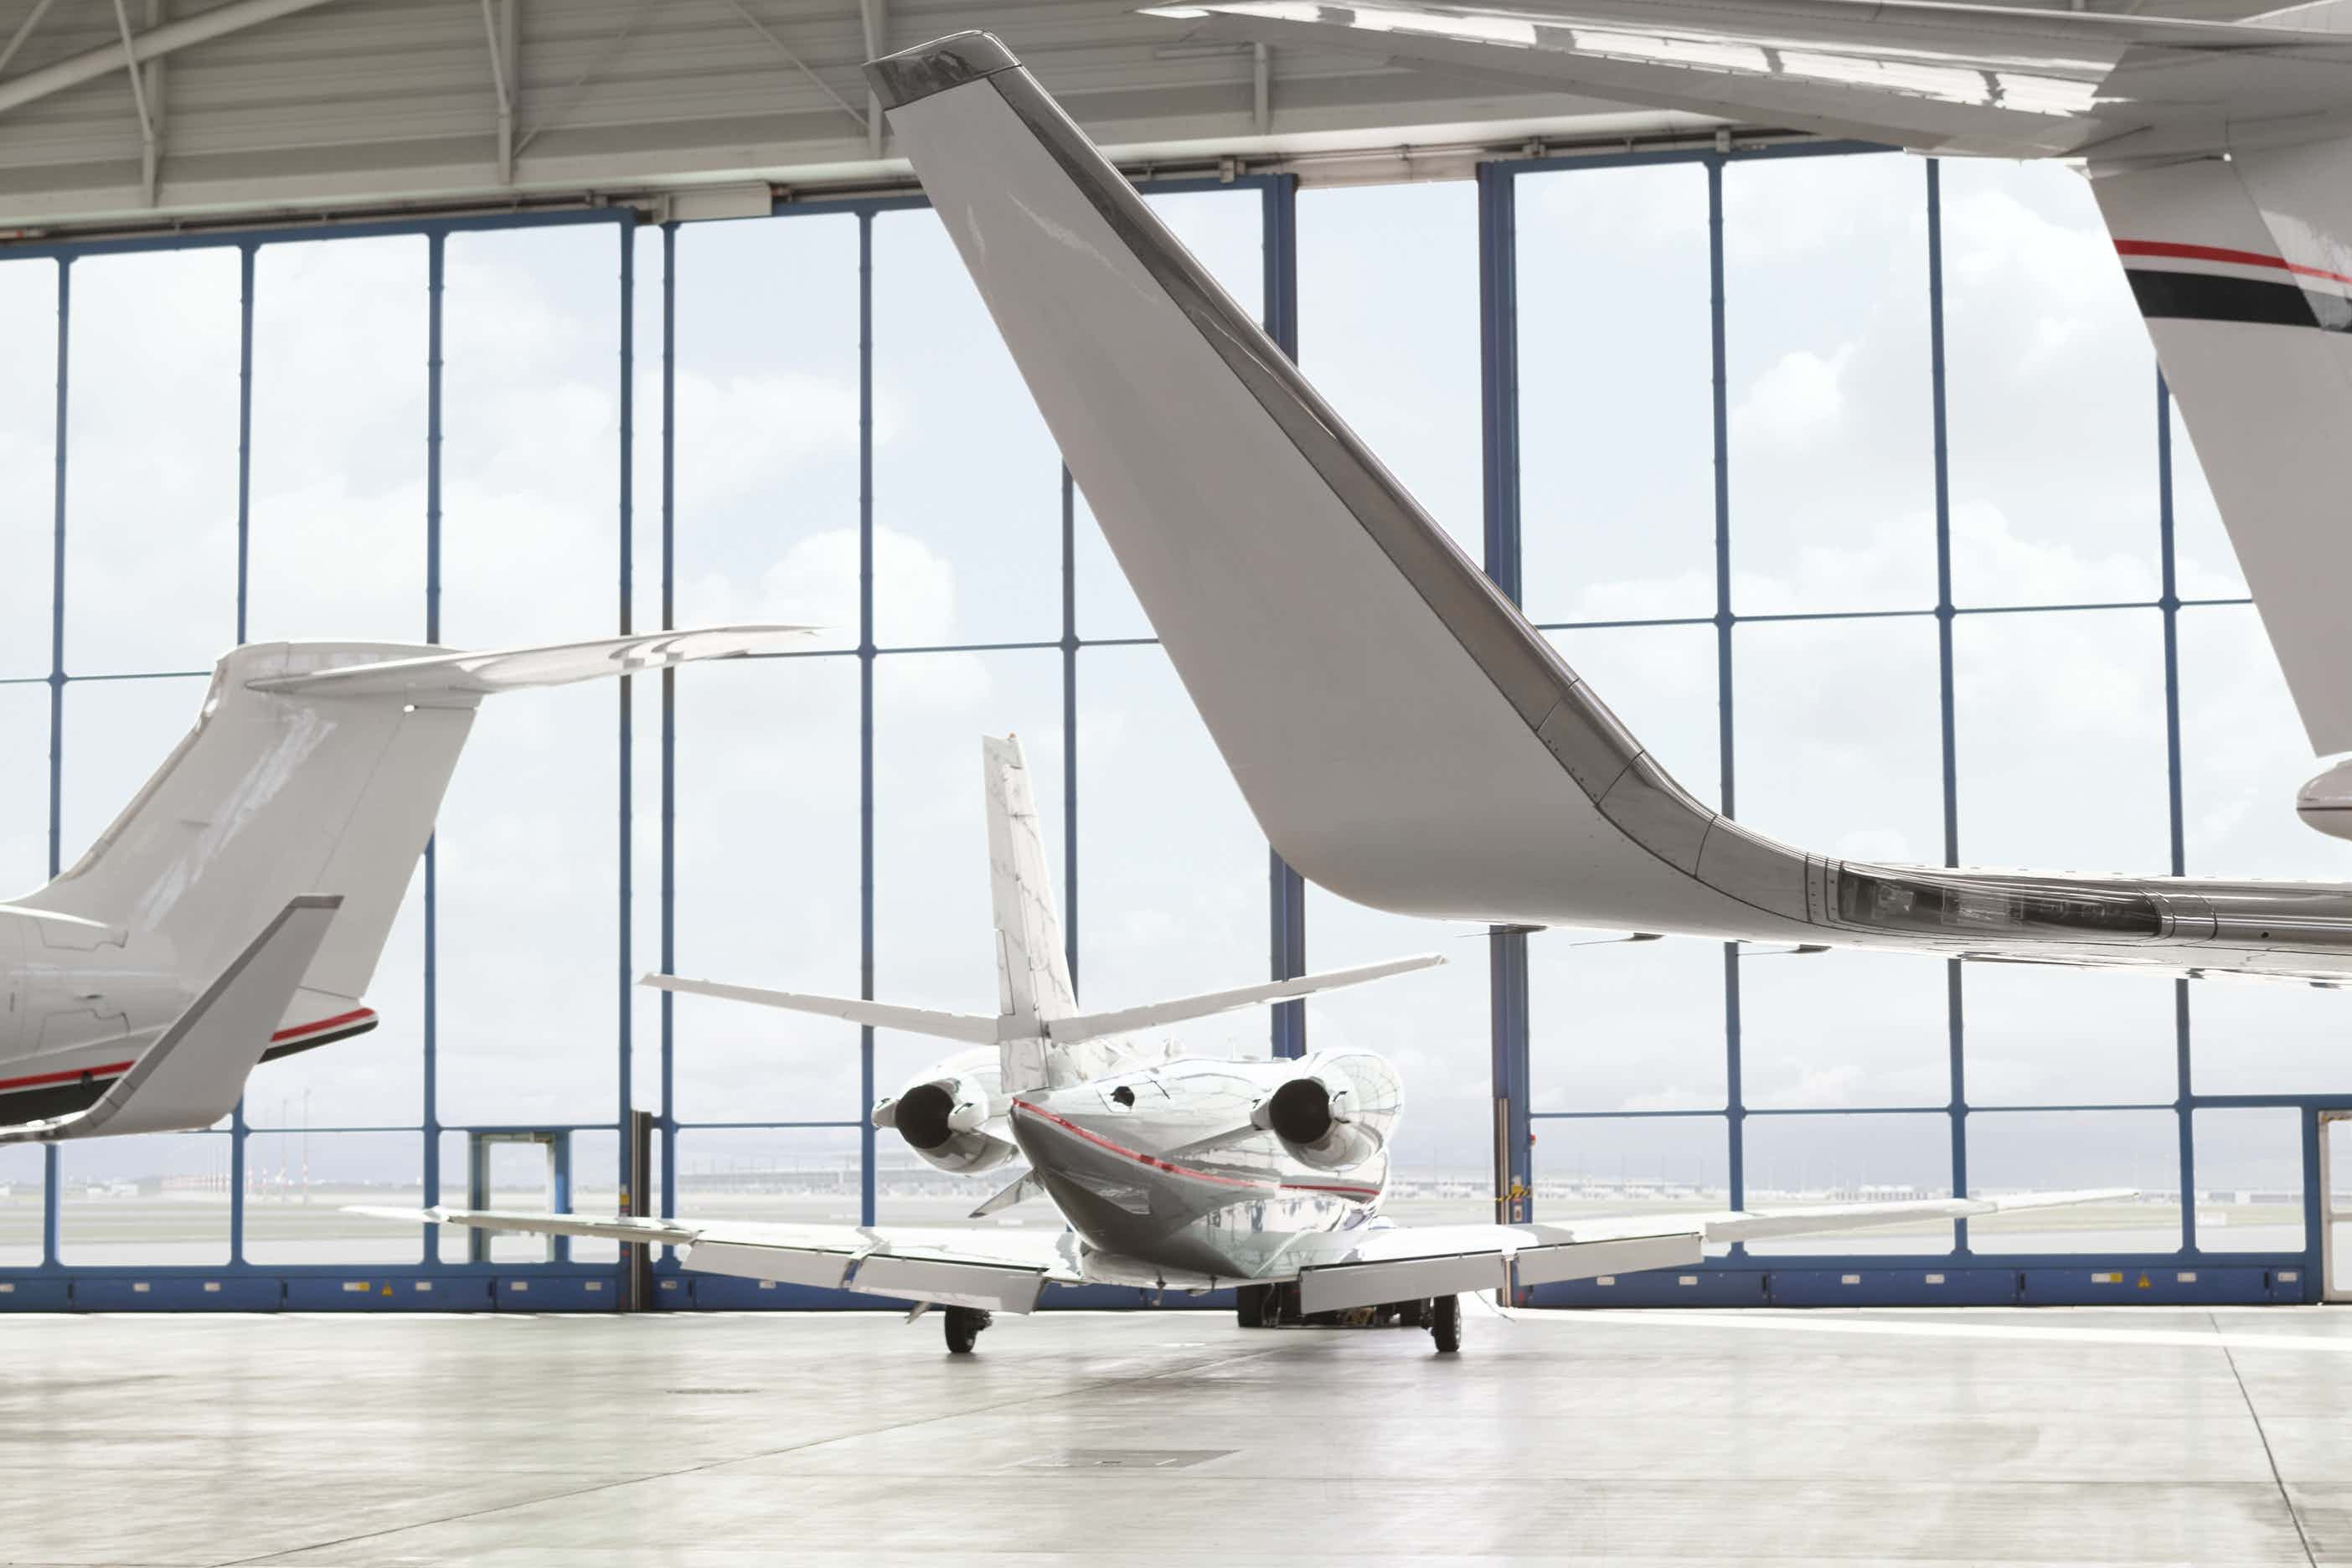 Nomad Aviation offers maintenance and hangarage services in Basel, Switzerland